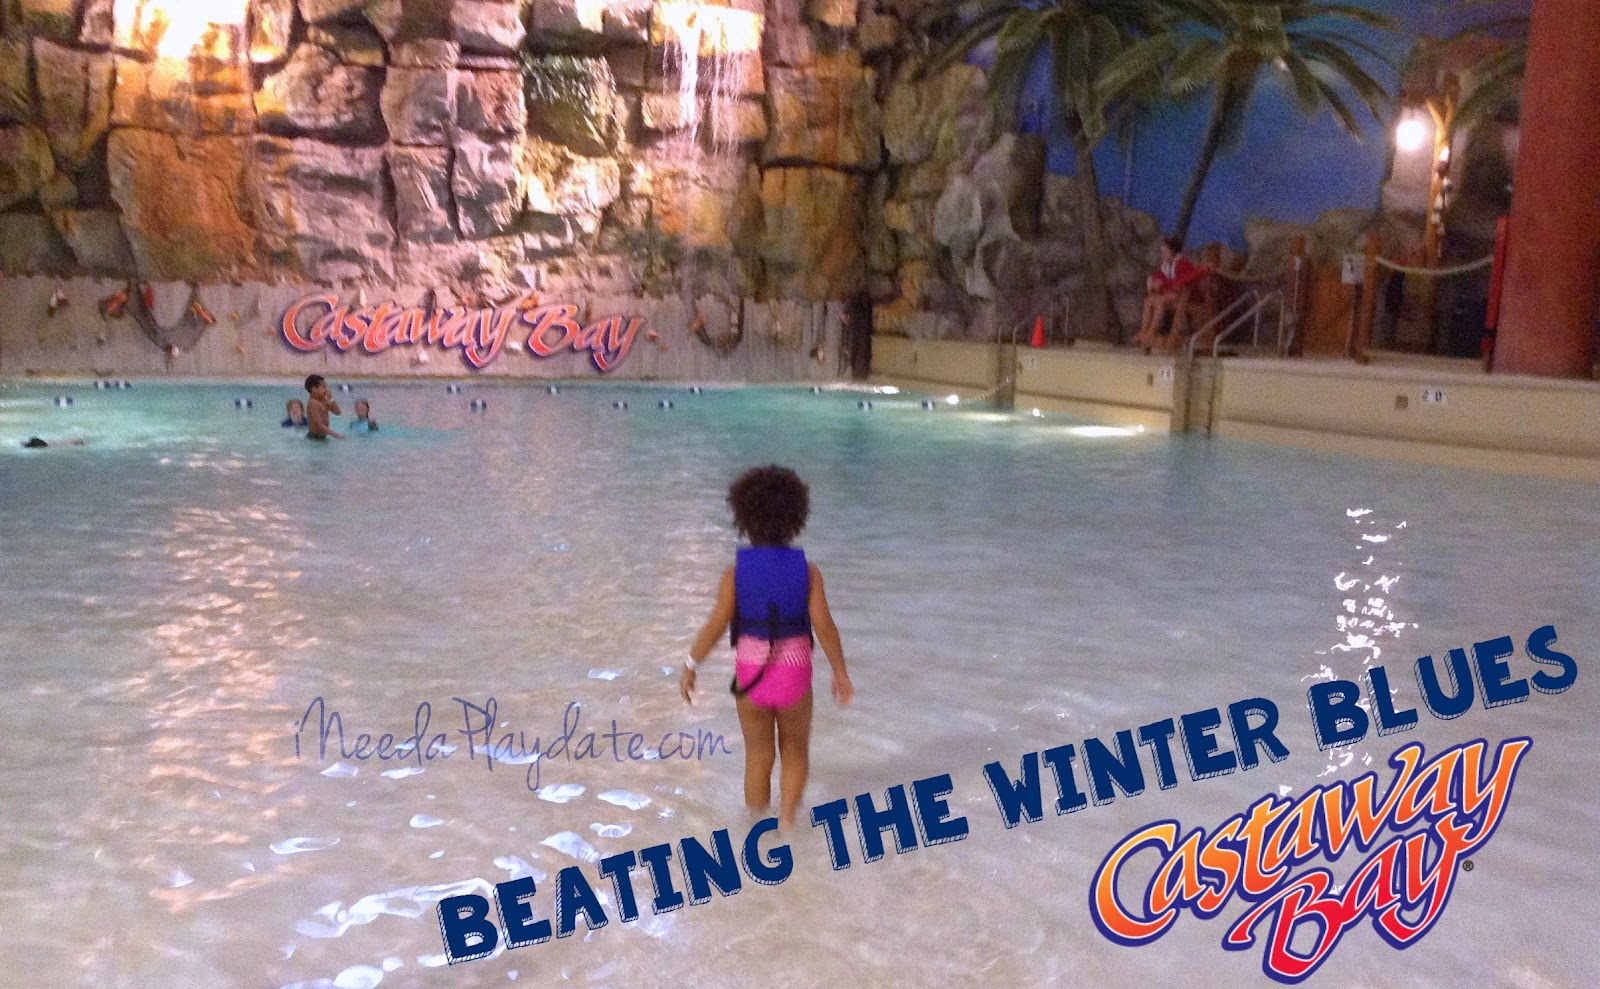 Beat the Winter Blues at @CastawayBay Indoor Waterpark! Enter to Win Day Passes! #sponsored